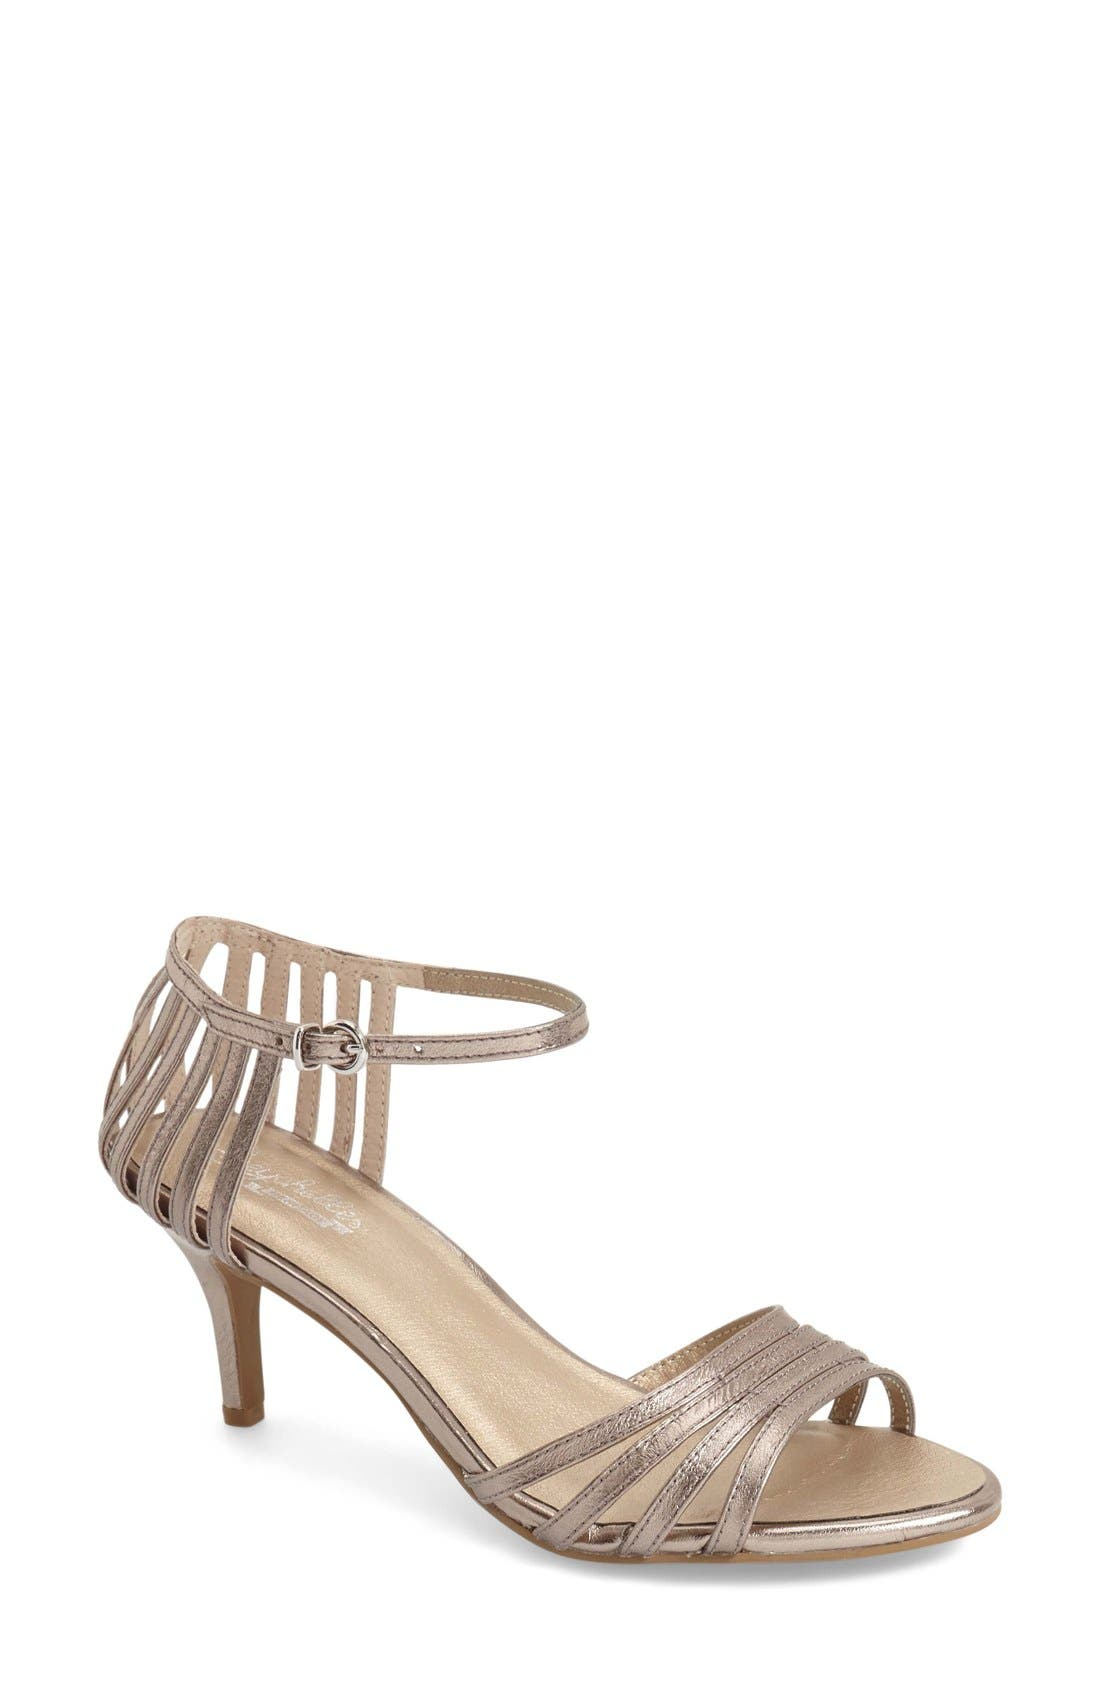 'Song and Dance' Ankle Strap Pump,                         Main,                         color, 022